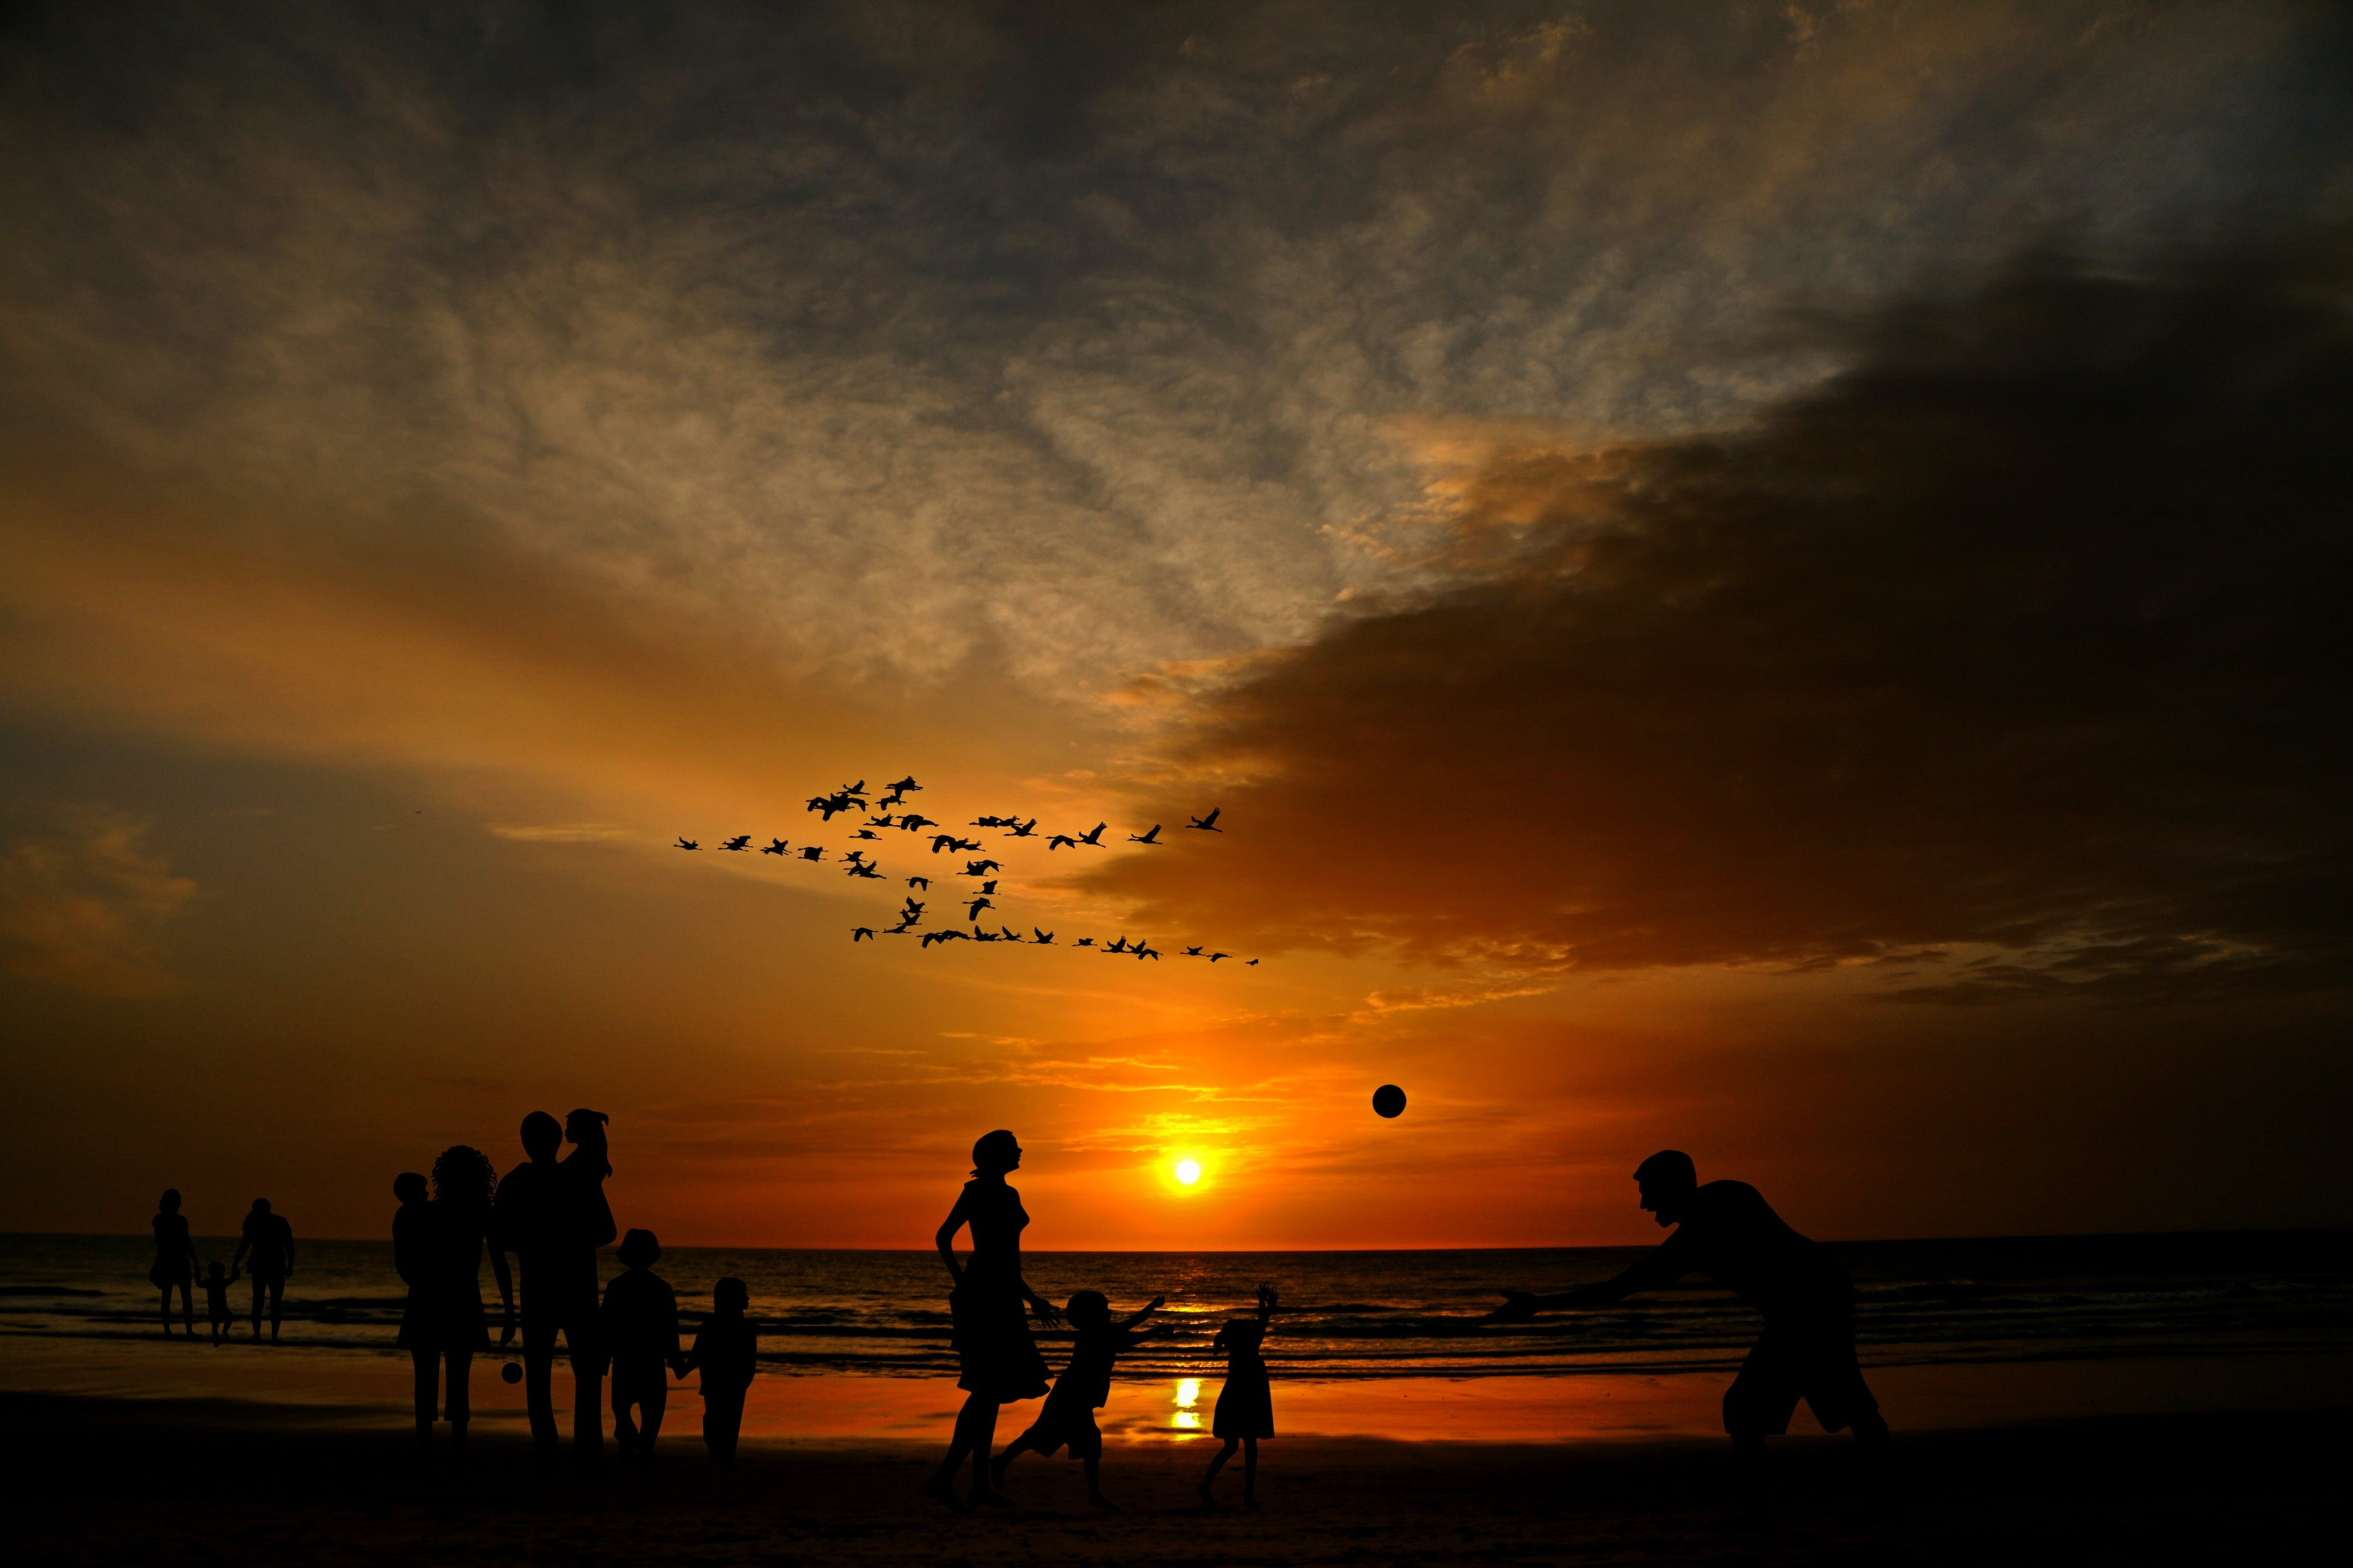 Silhouette of Group of People Playing at Beach Shore